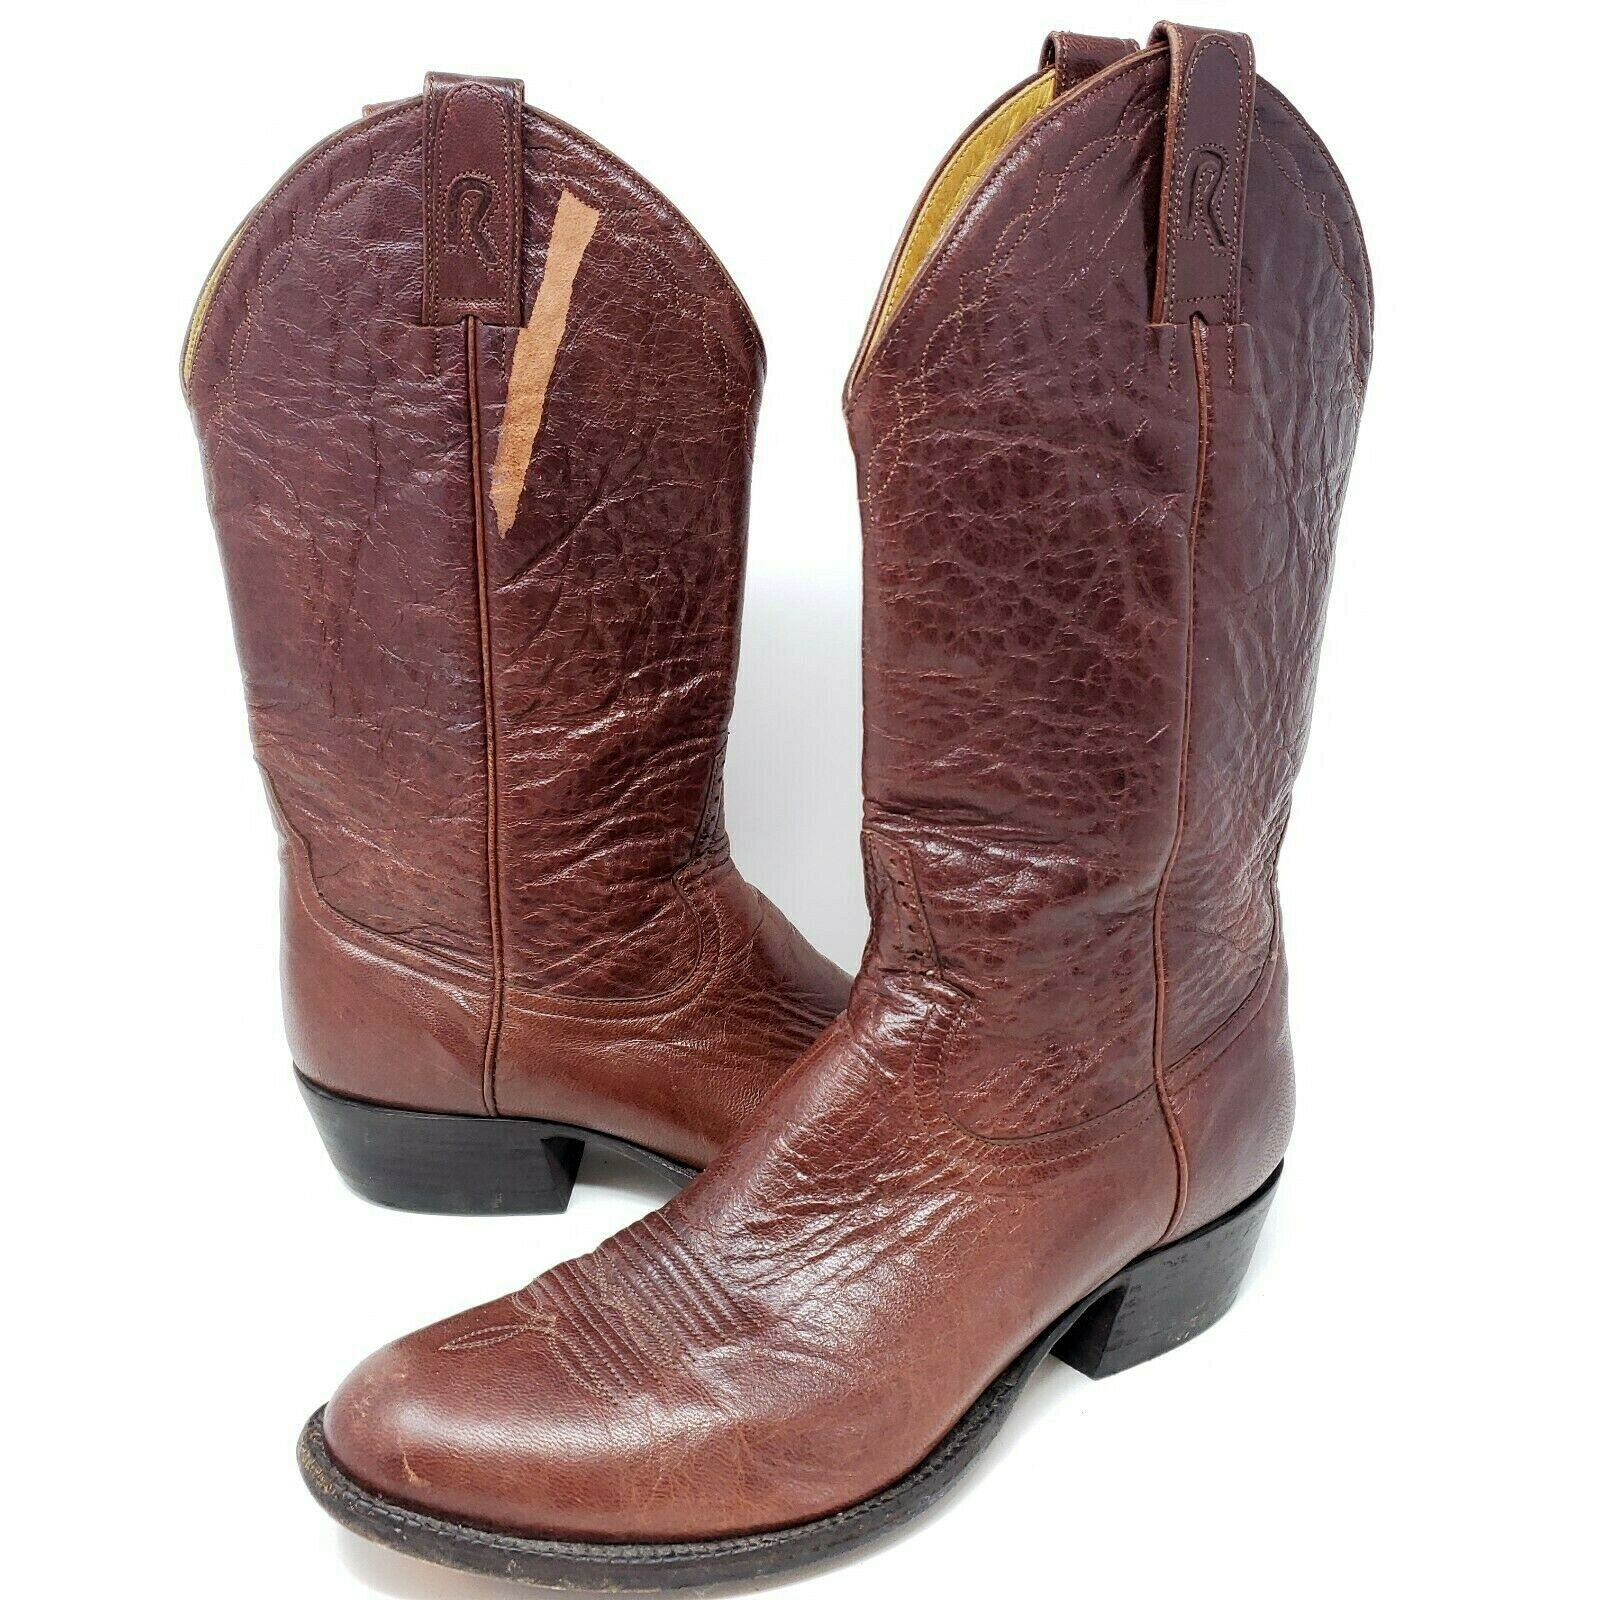 Rod Patrick Cowboy Boots Sz 11 D Brown Leather - Cosmetic Damage - Please Read